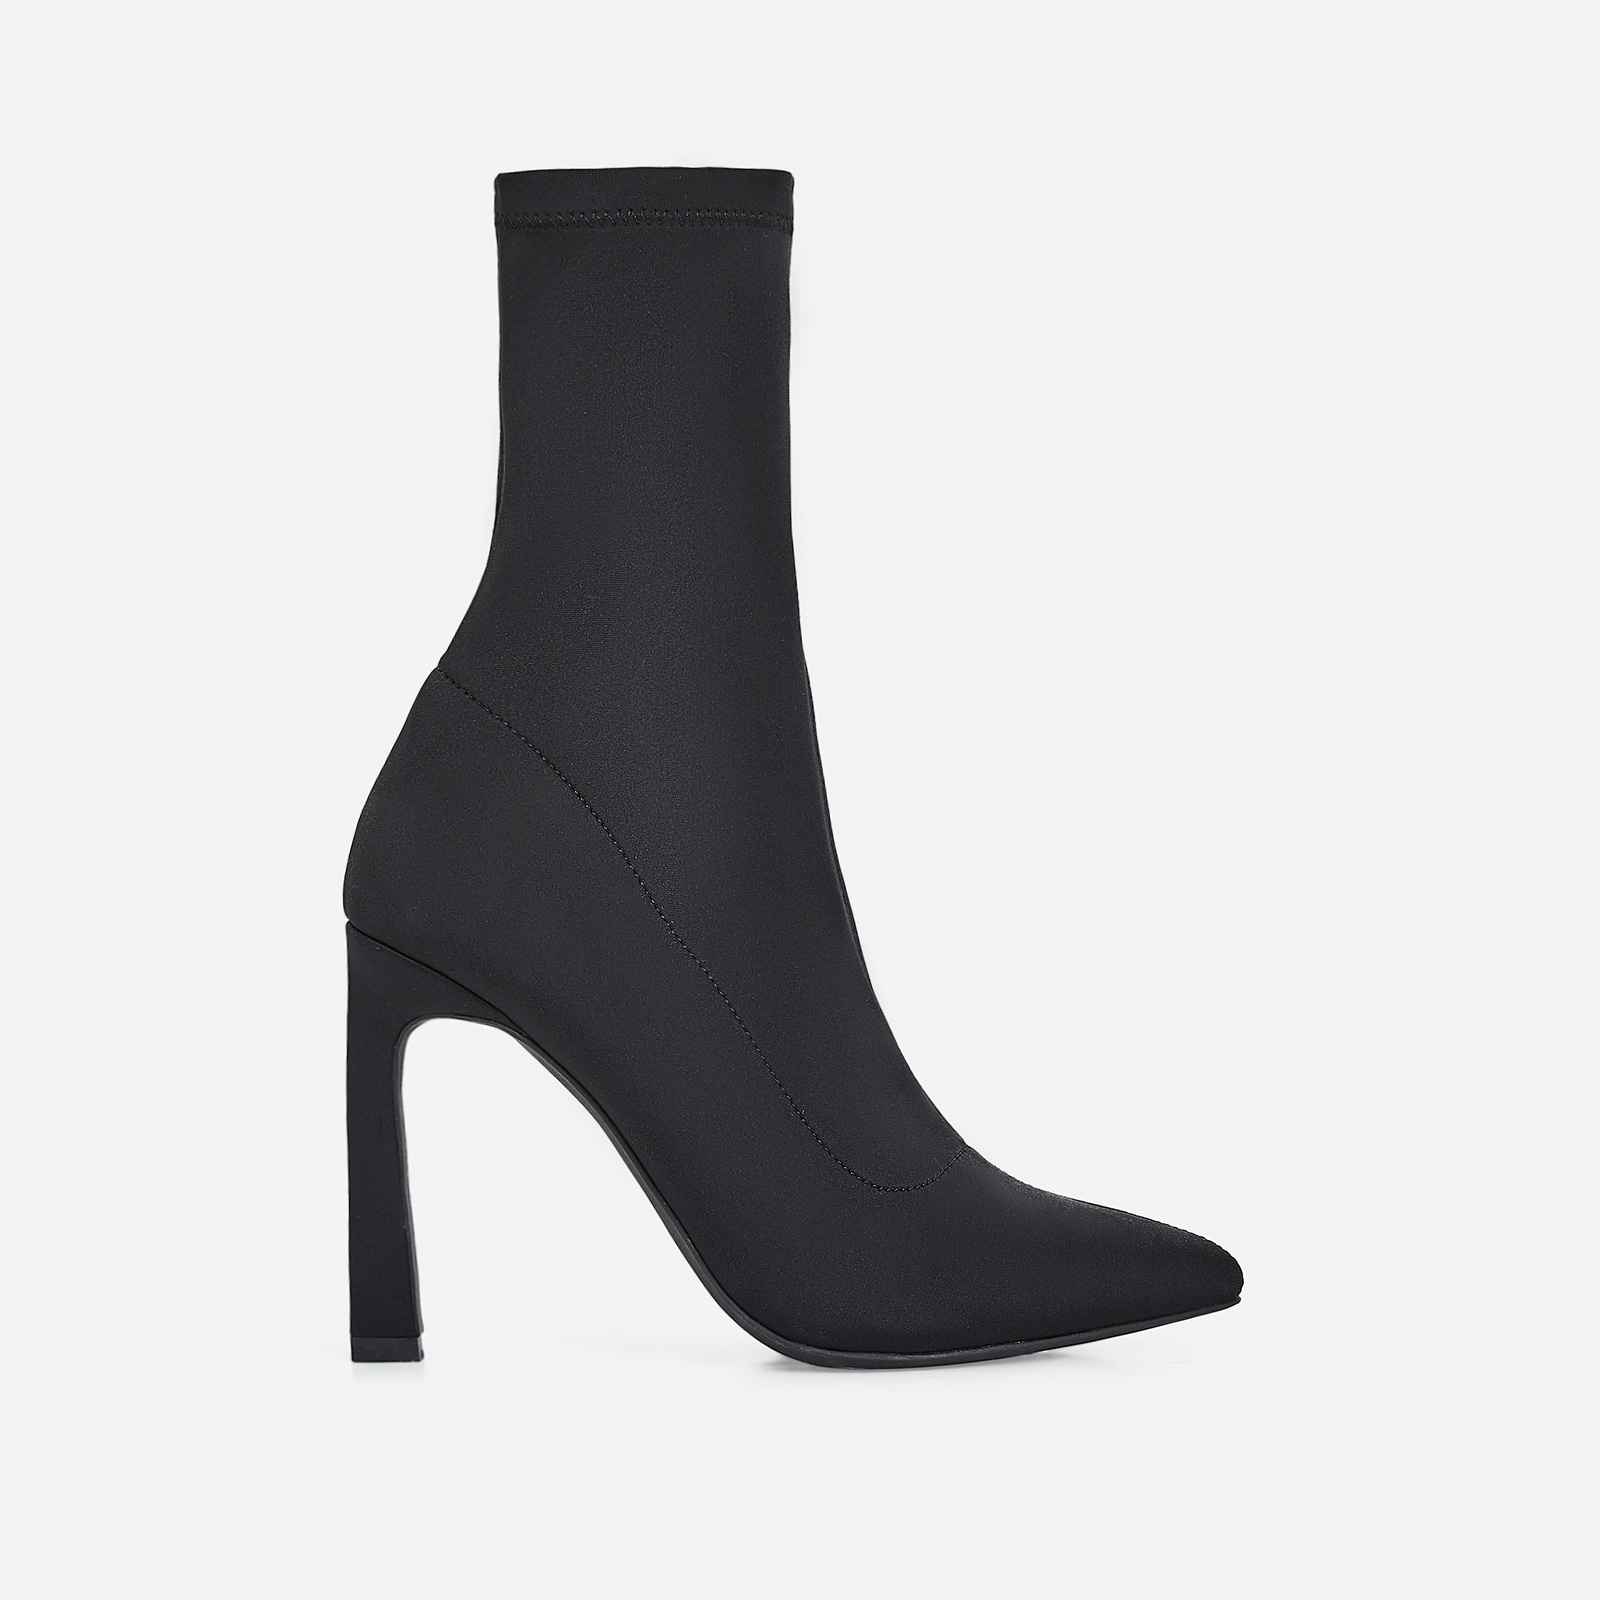 Mackenzie Flared Stiletto Heel Ankle Sock Boot In Black Lycra